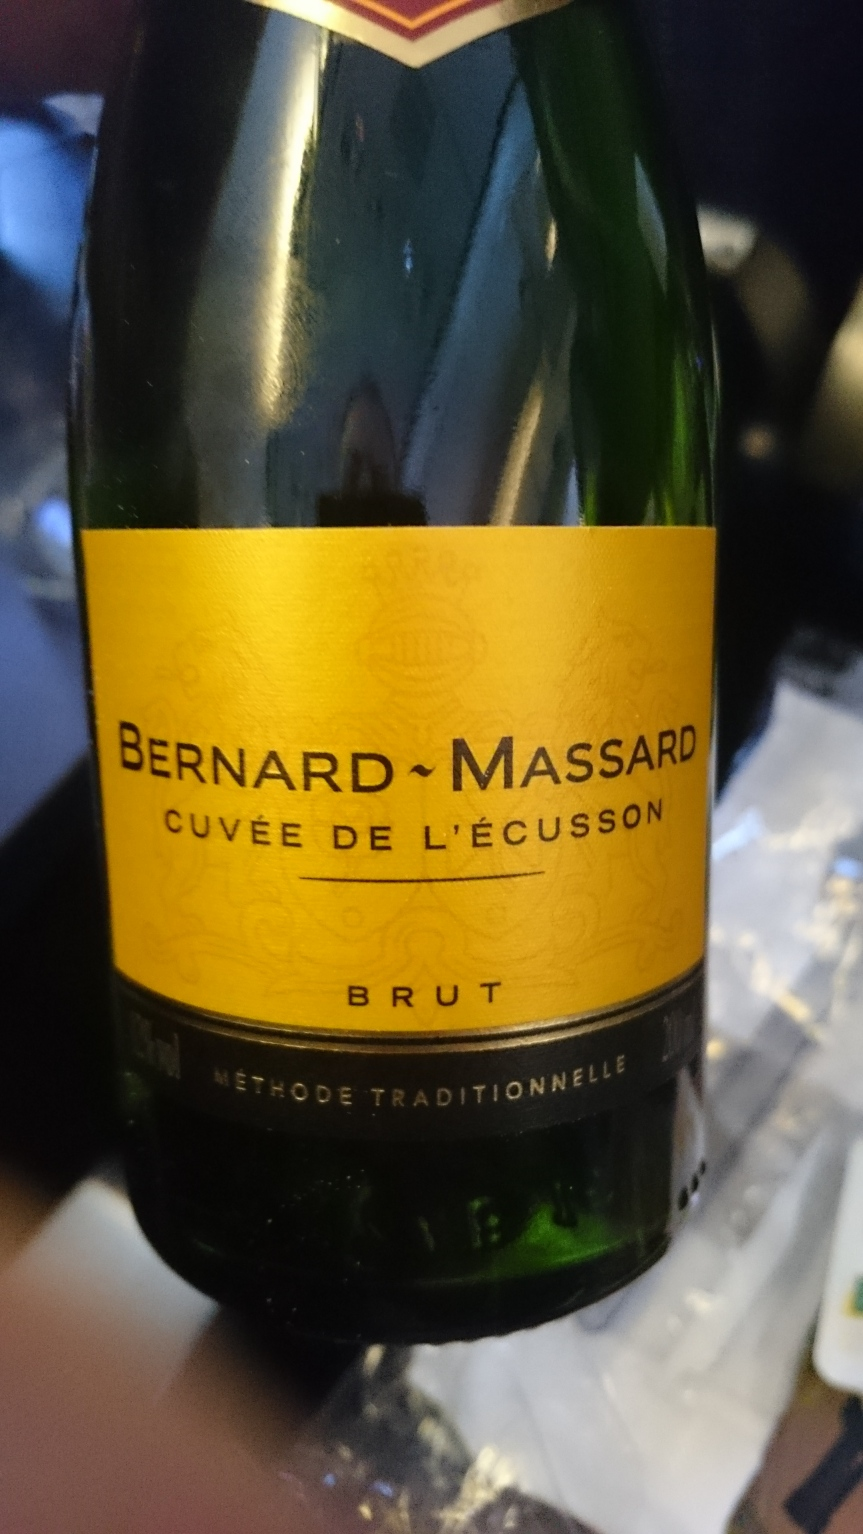 High-flying wine: Review of sparkling wine Bernard-Massard served on SAS flight